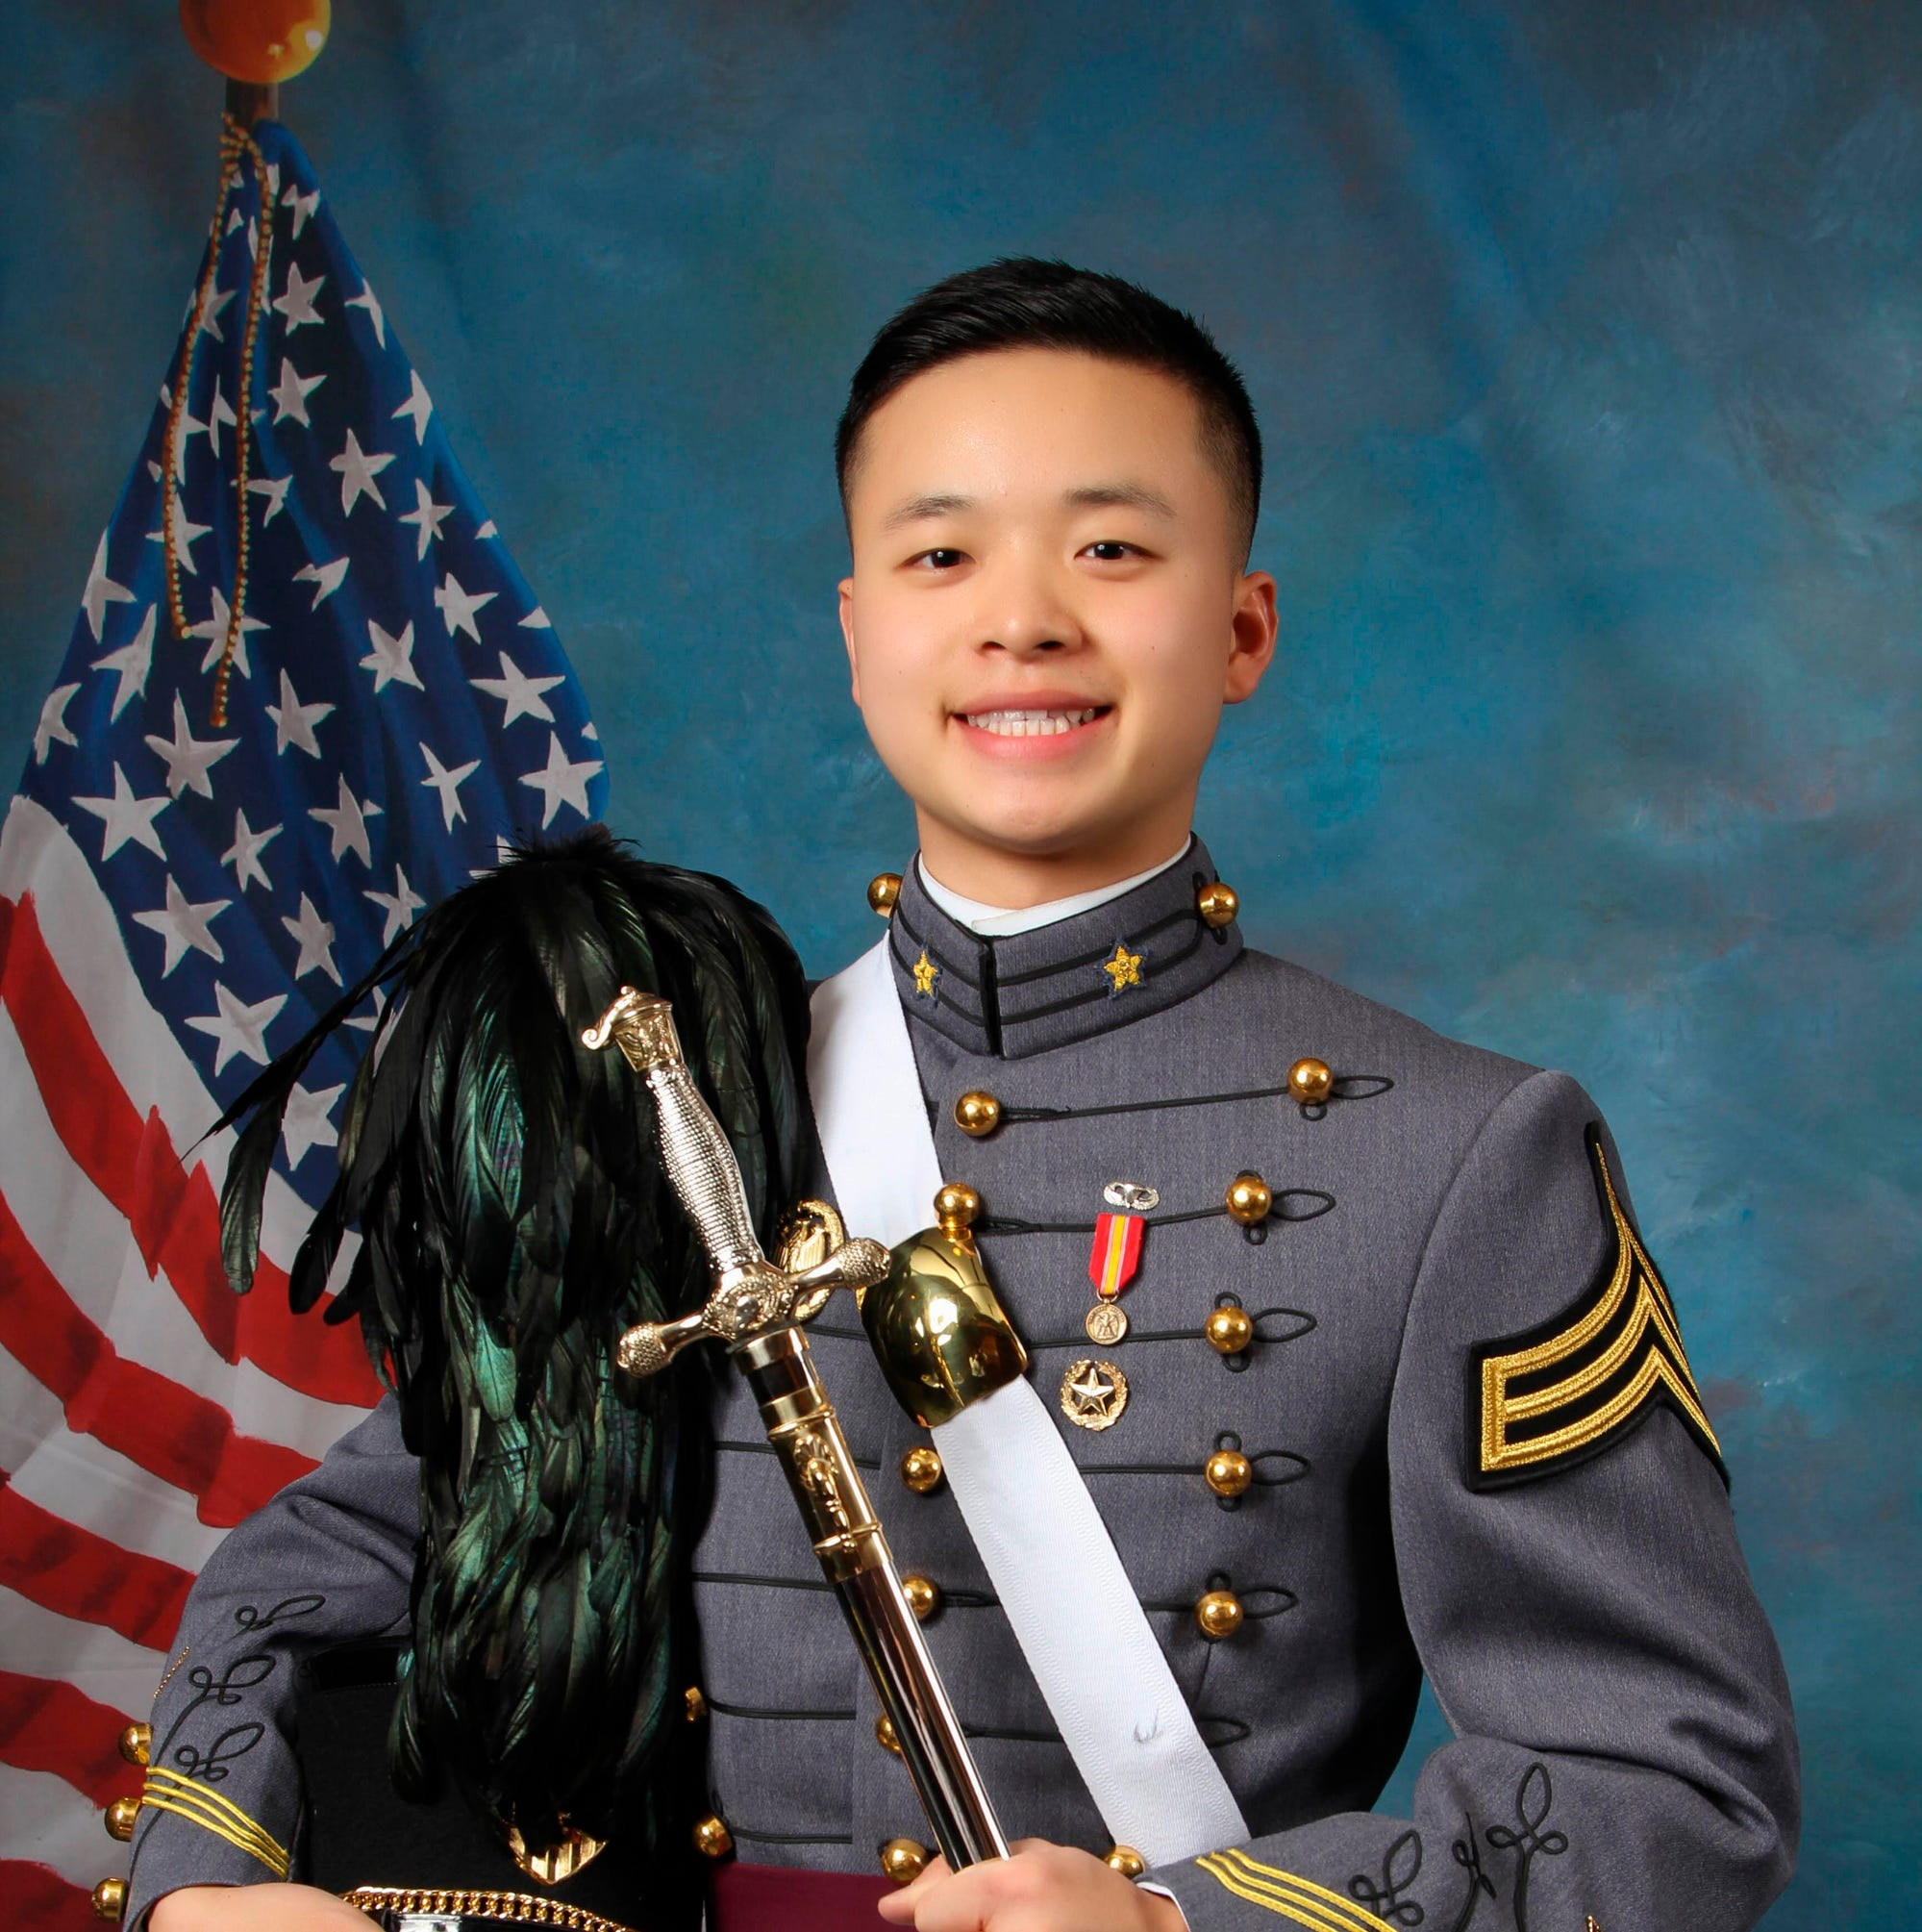 West Point Cadet Peter Zhu: Parents can use his sperm to make baby, judge rules